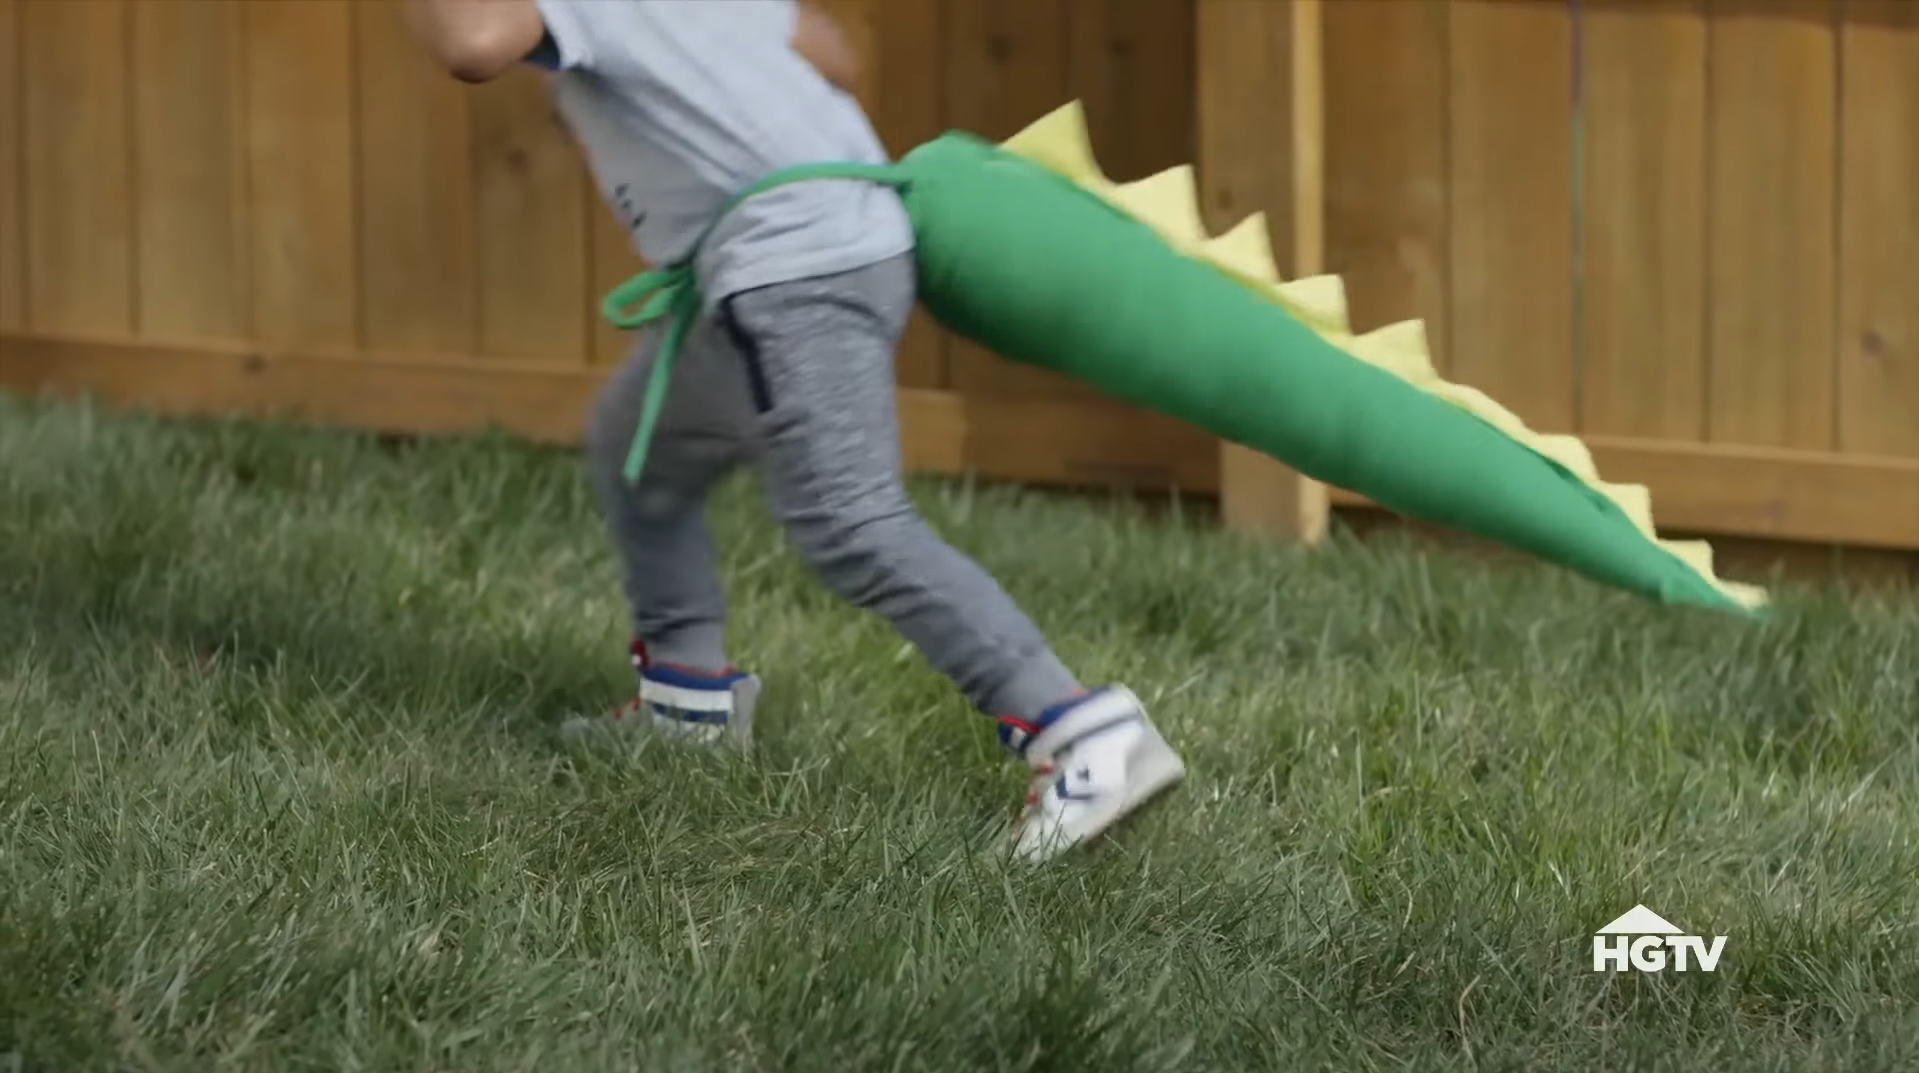 At home halloween costume ideas dragon's tail